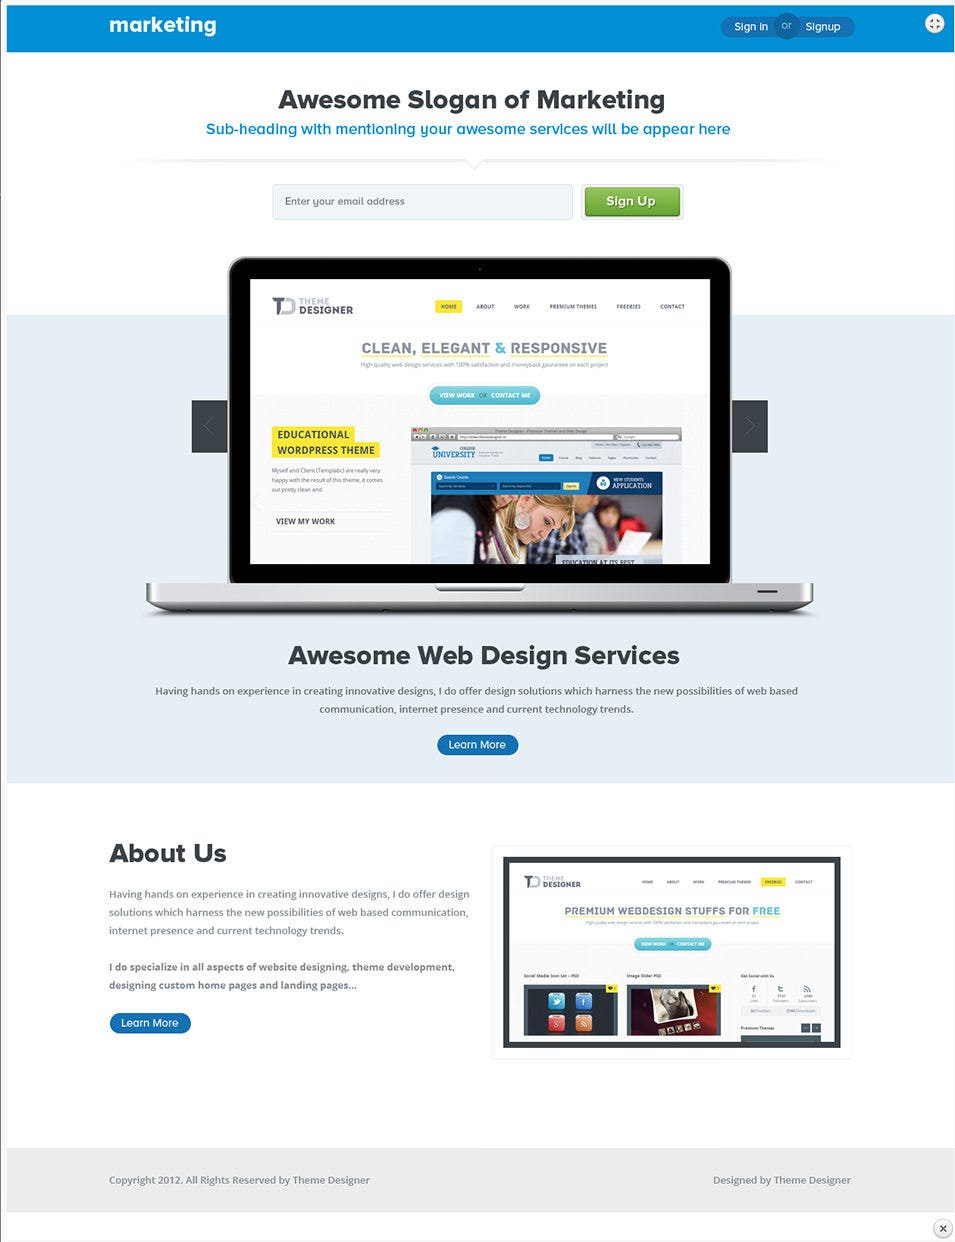 marketing landing page psd copy